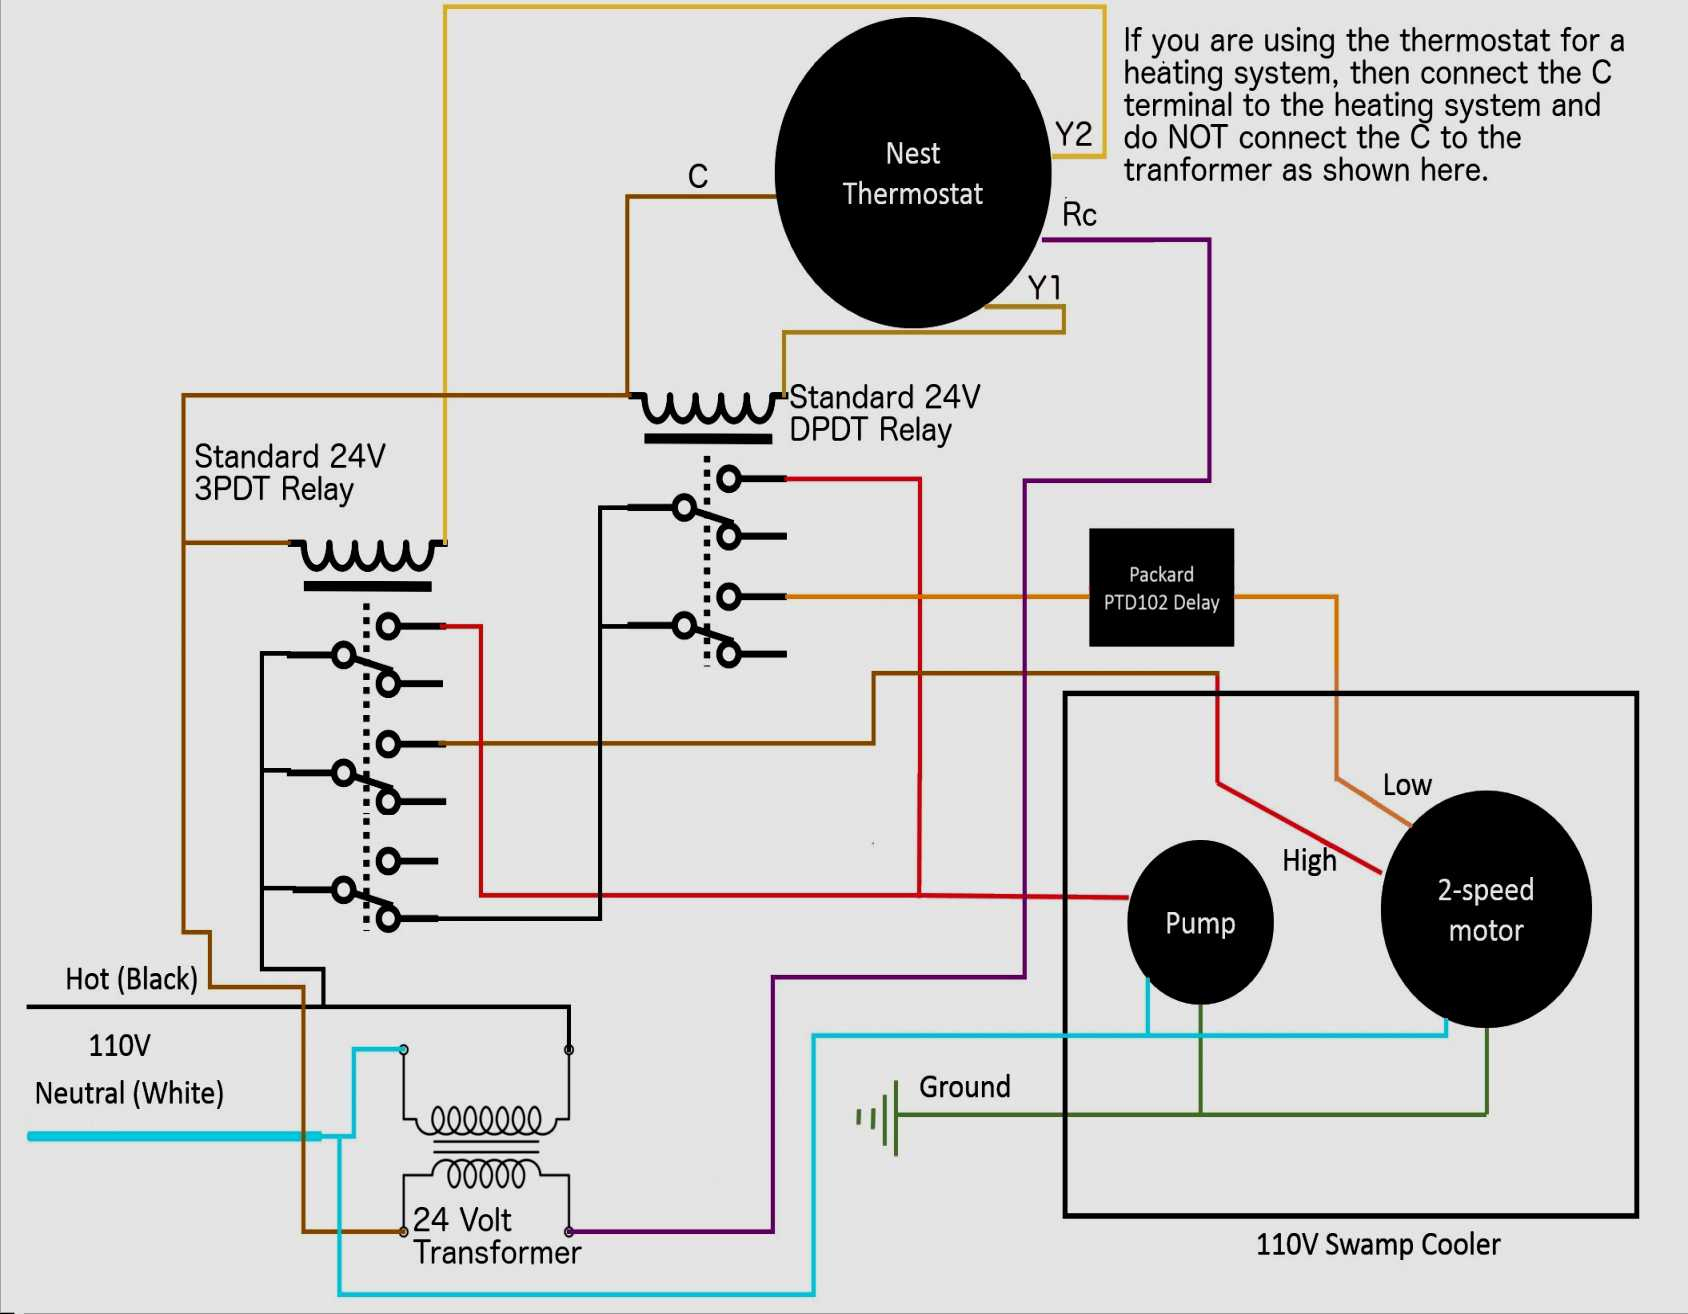 Honeywell Humidifier Wiring Diagram With Nest - Wiring Diagram Essig - Nest Wiring Diagram Honeywell